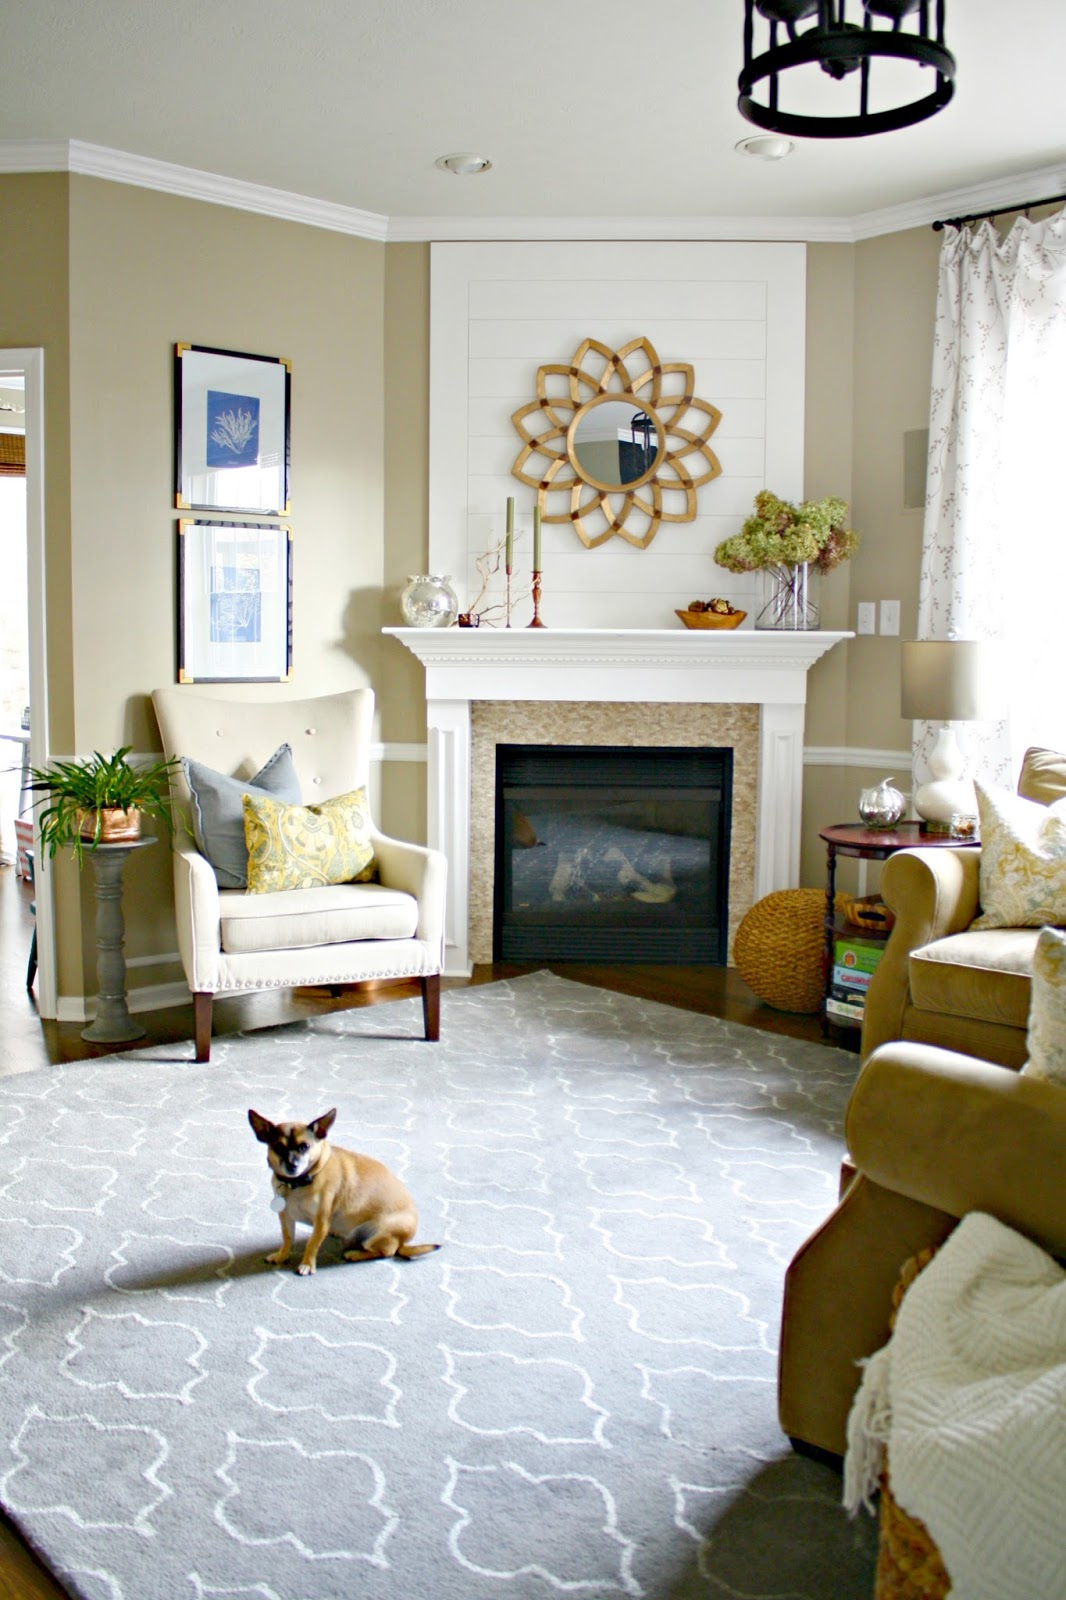 Corner Showcase Designs For Living Room: Our Smartest And Best Renovation! From Thrifty Decor Chick